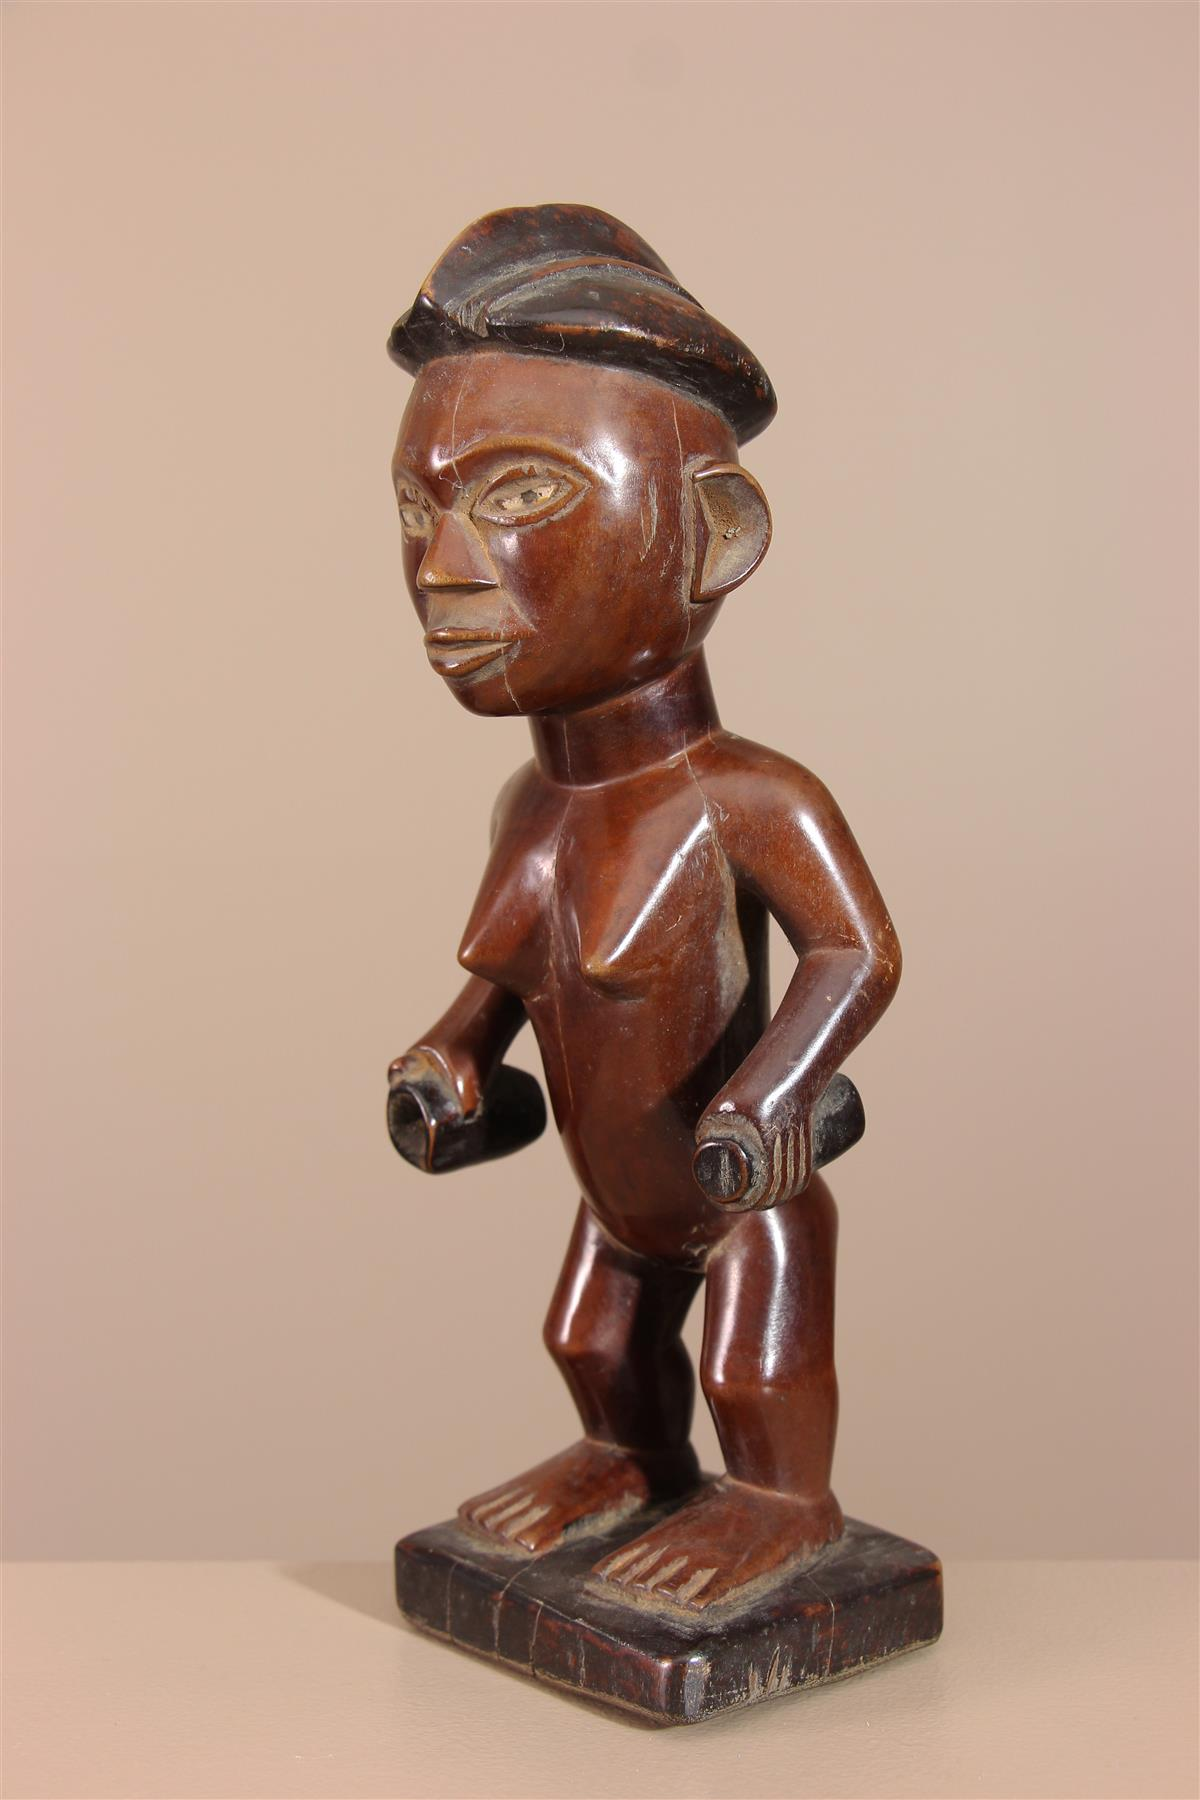 Statuette Vili - Déco africaine - Art africain traditionnel